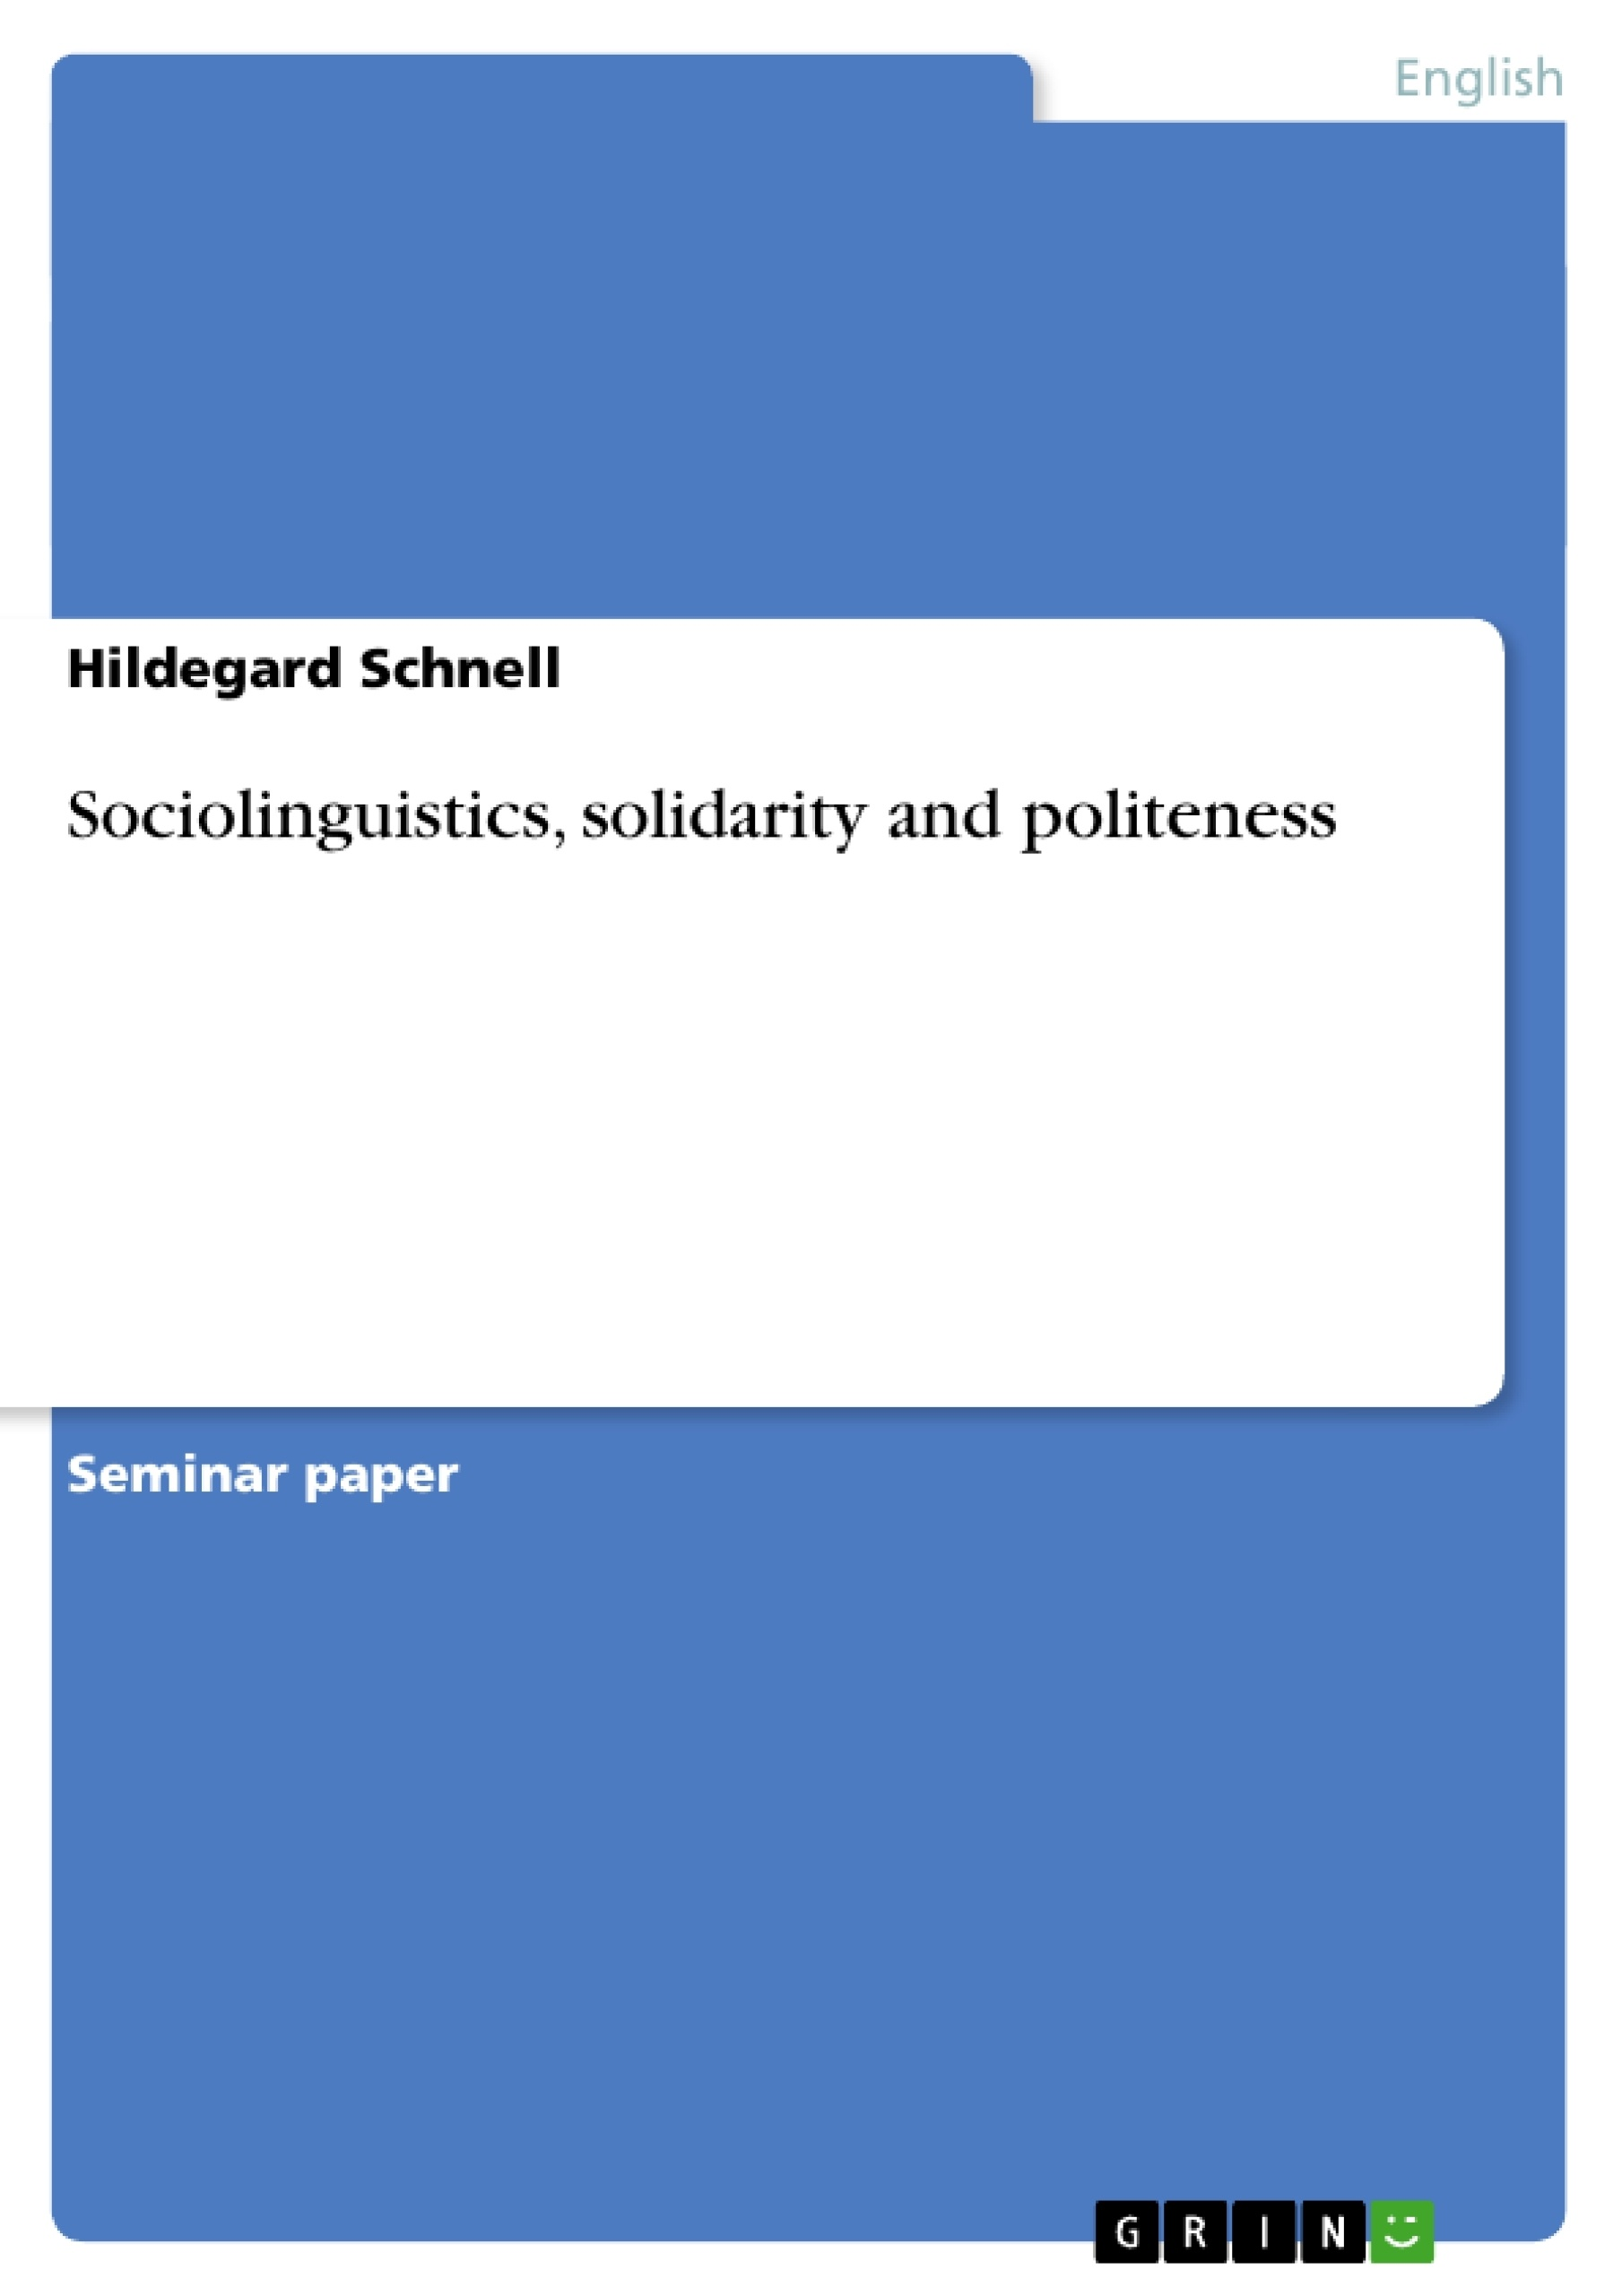 sociolinguistics term paper Sociolinguistics is the study of aspects of societies, including cultural norms   the specific concern of this paper is focusing on the significance and function   the term vernacular has various meanings but mostly refers to a.